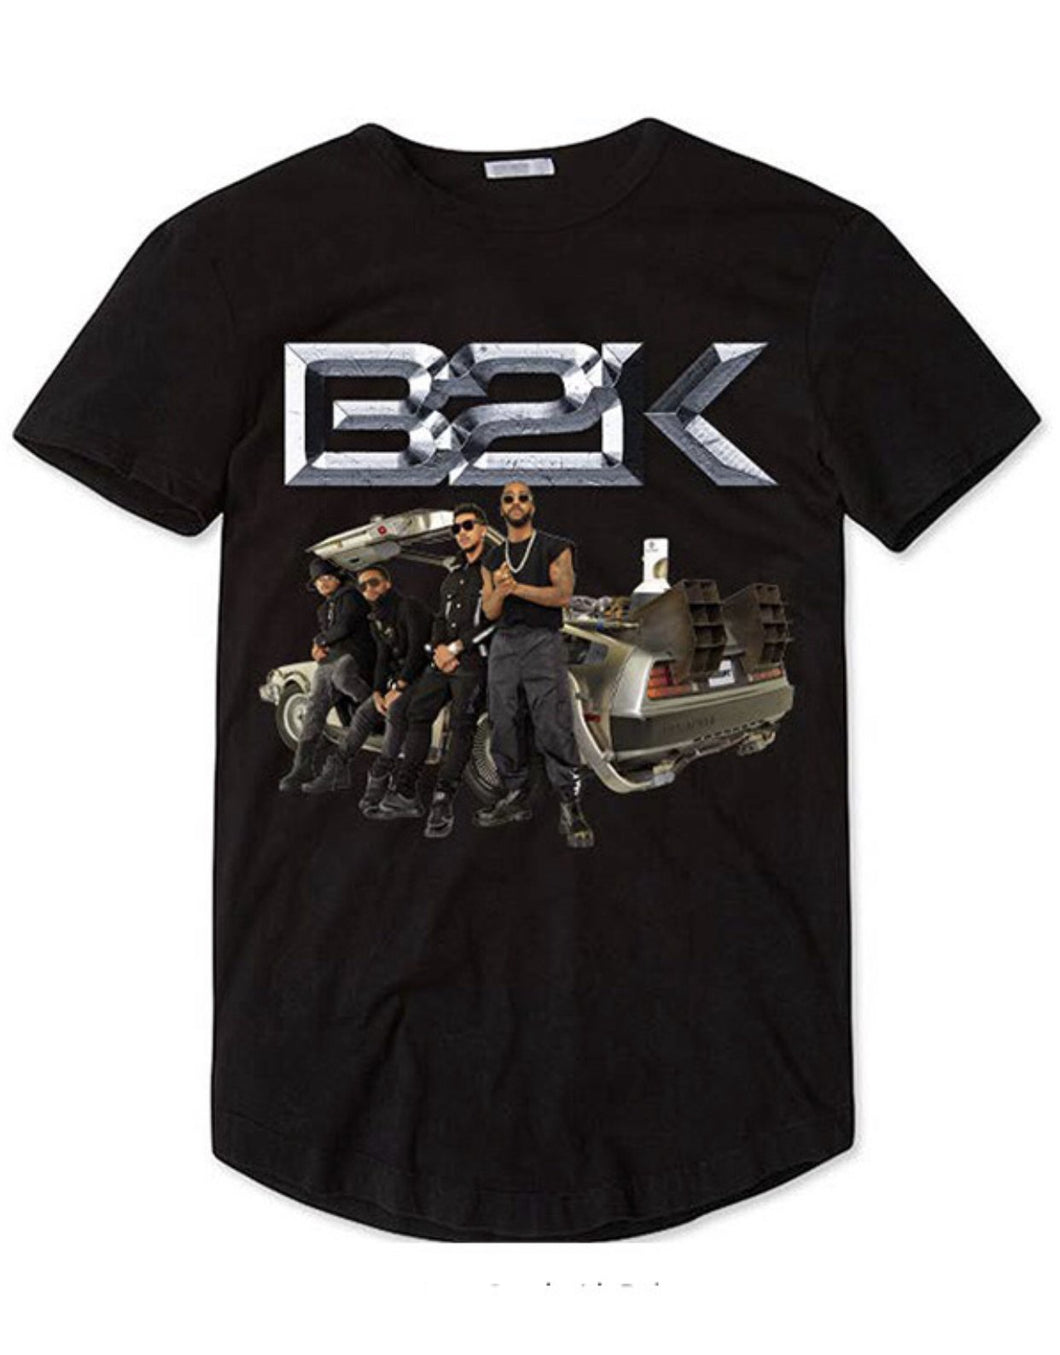 Limited Edition B2K Black T-Shirt - Band with Delorean